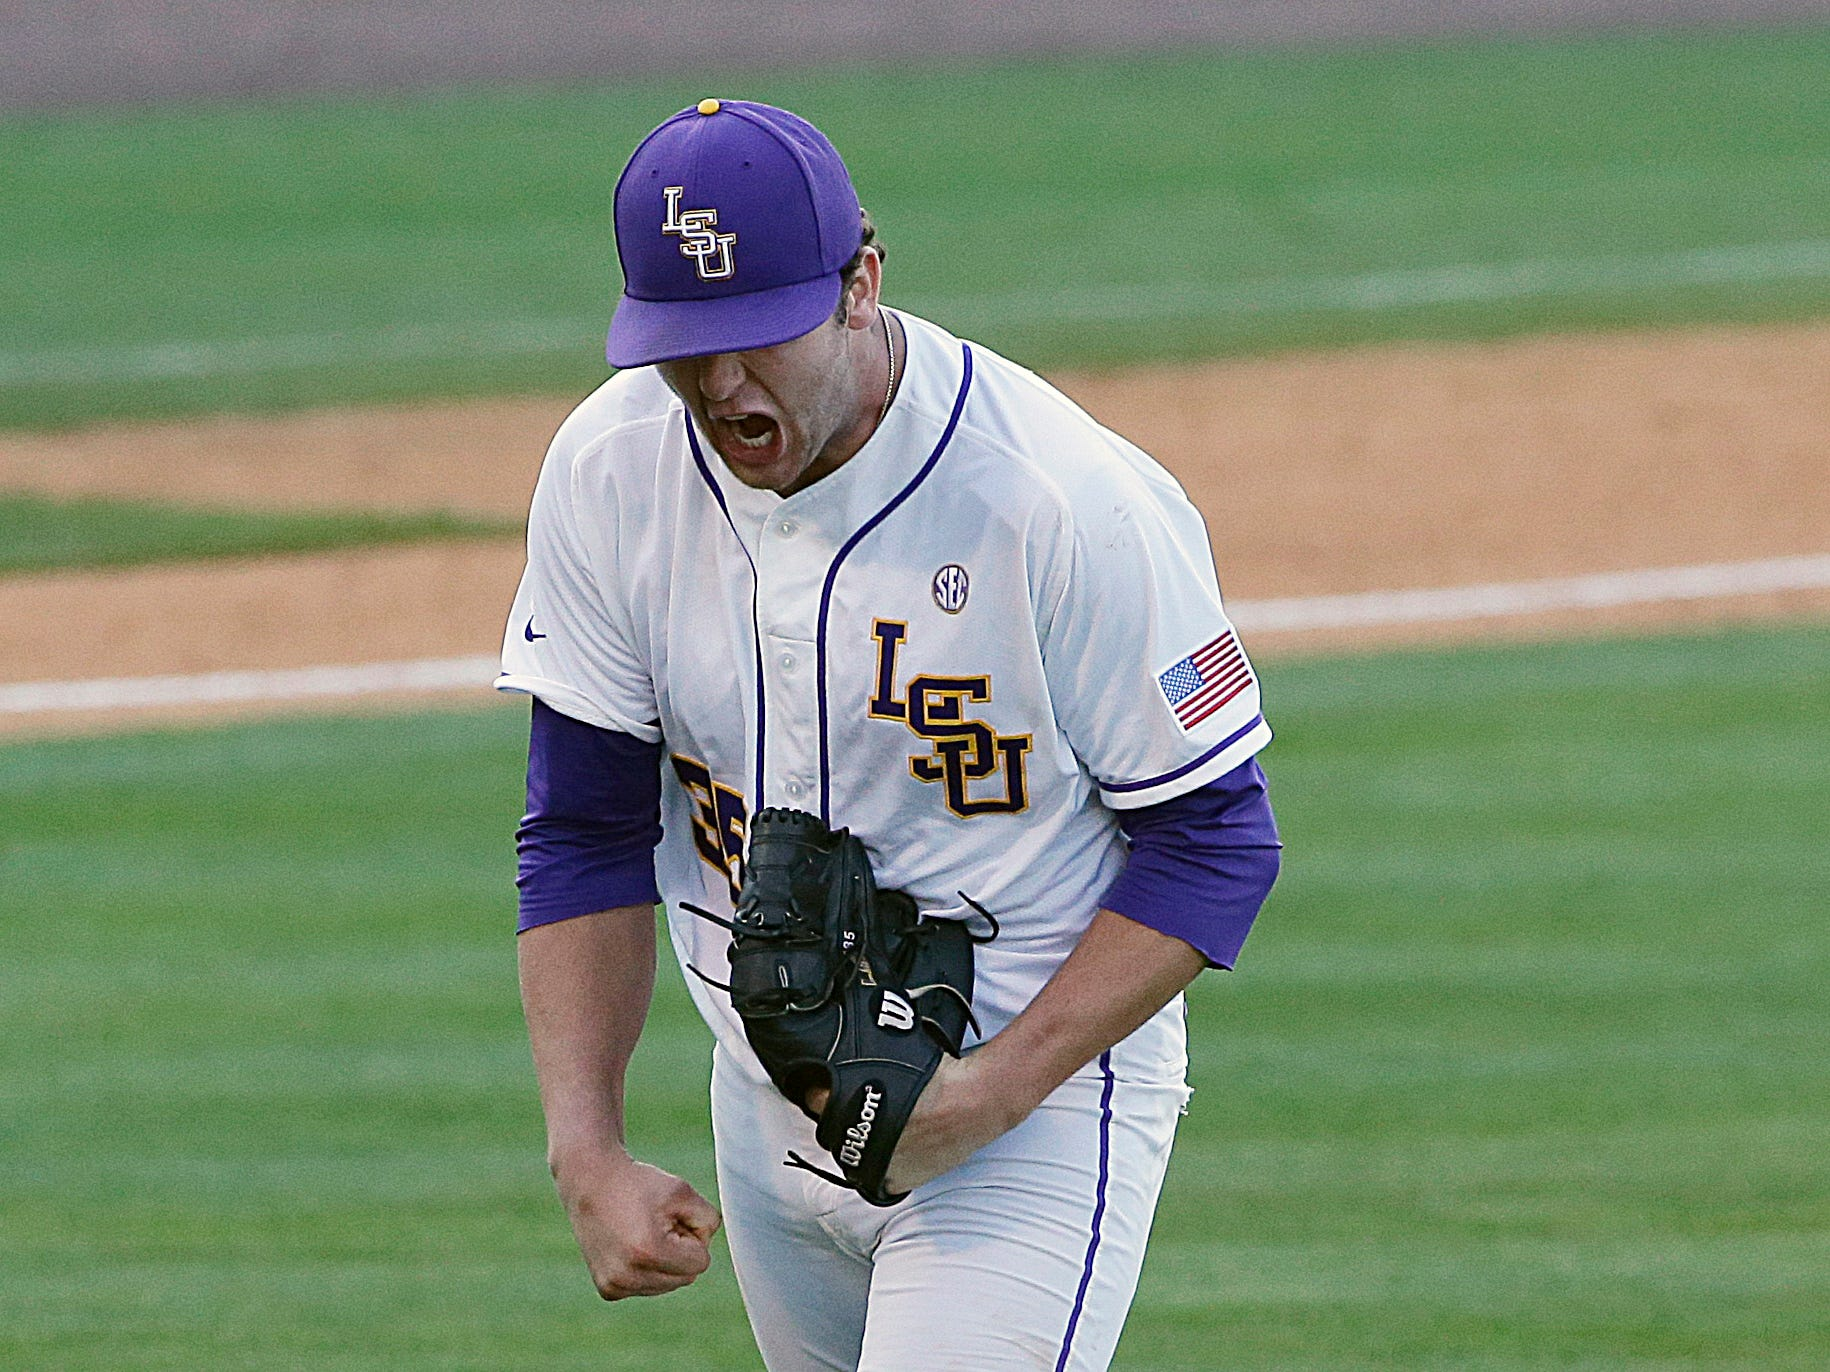 LSU freshman pitcher Alex Lange, who is 10-0 on the season, says the Tigers can't afford to look past anyone this weekend or they could lose a home regional for the second consecutive season.